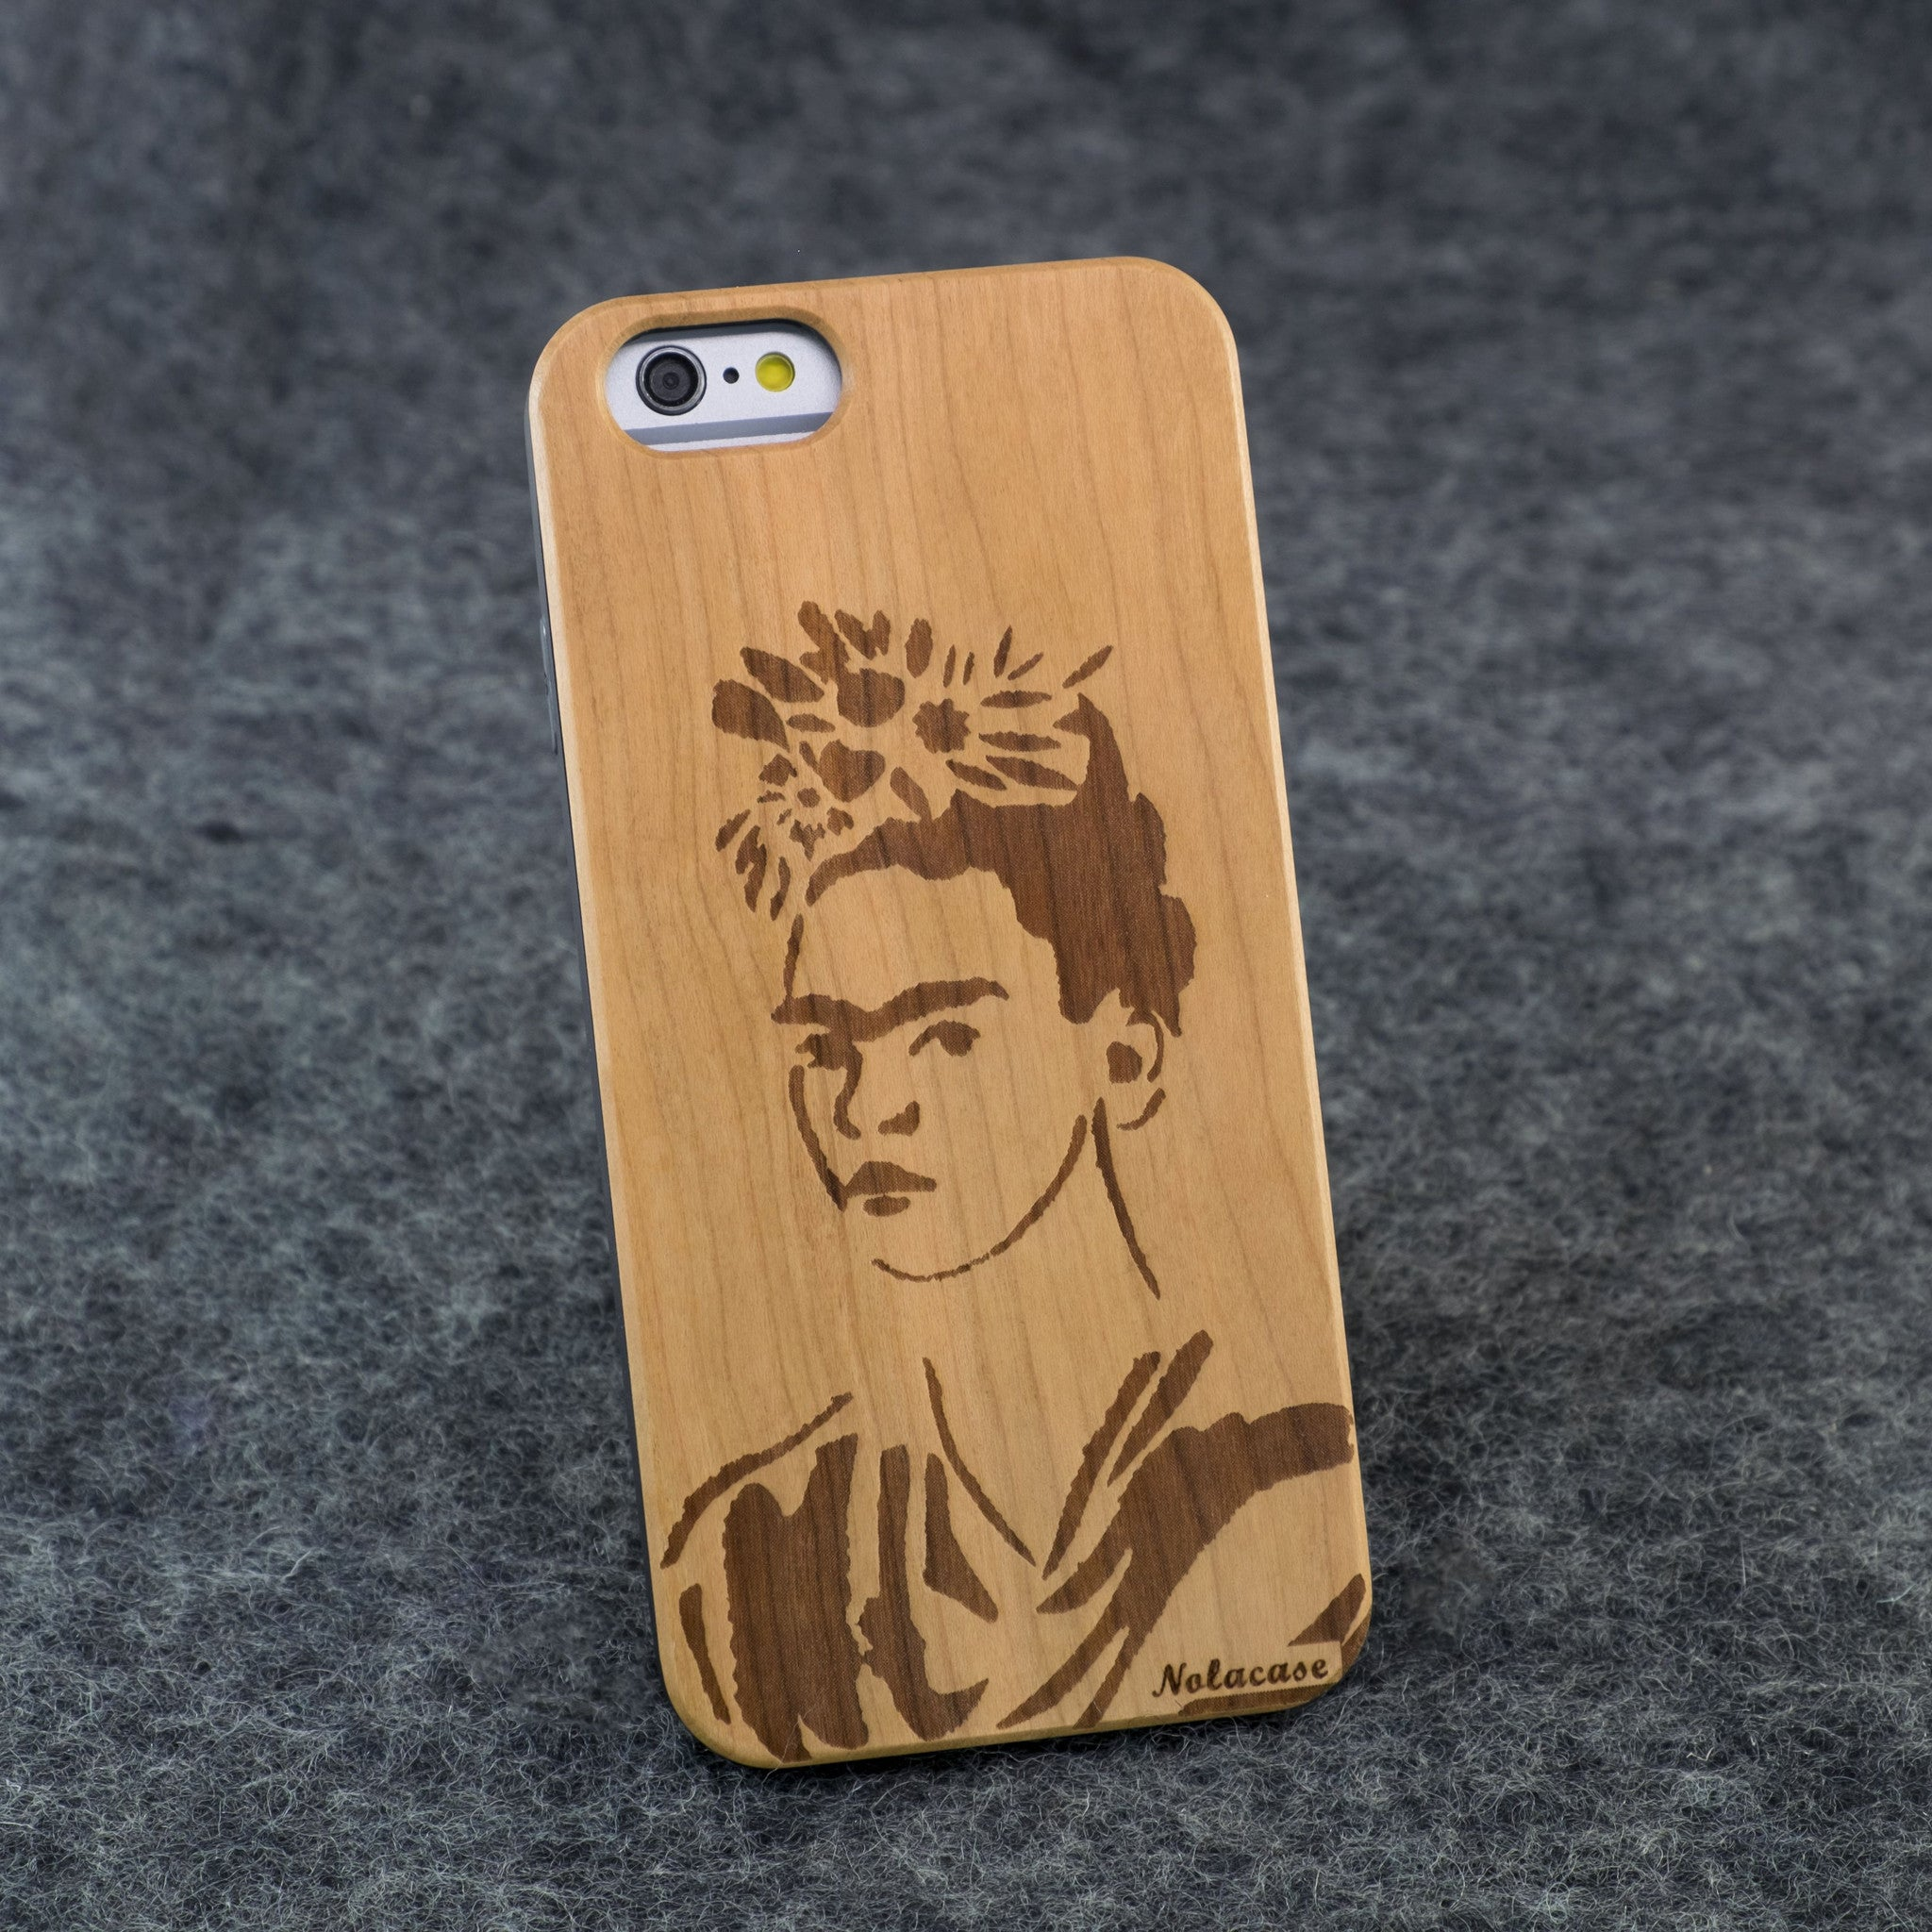 iPhone 6 / 6S Frida Kahlo Slim Wood Case - NOLACASE